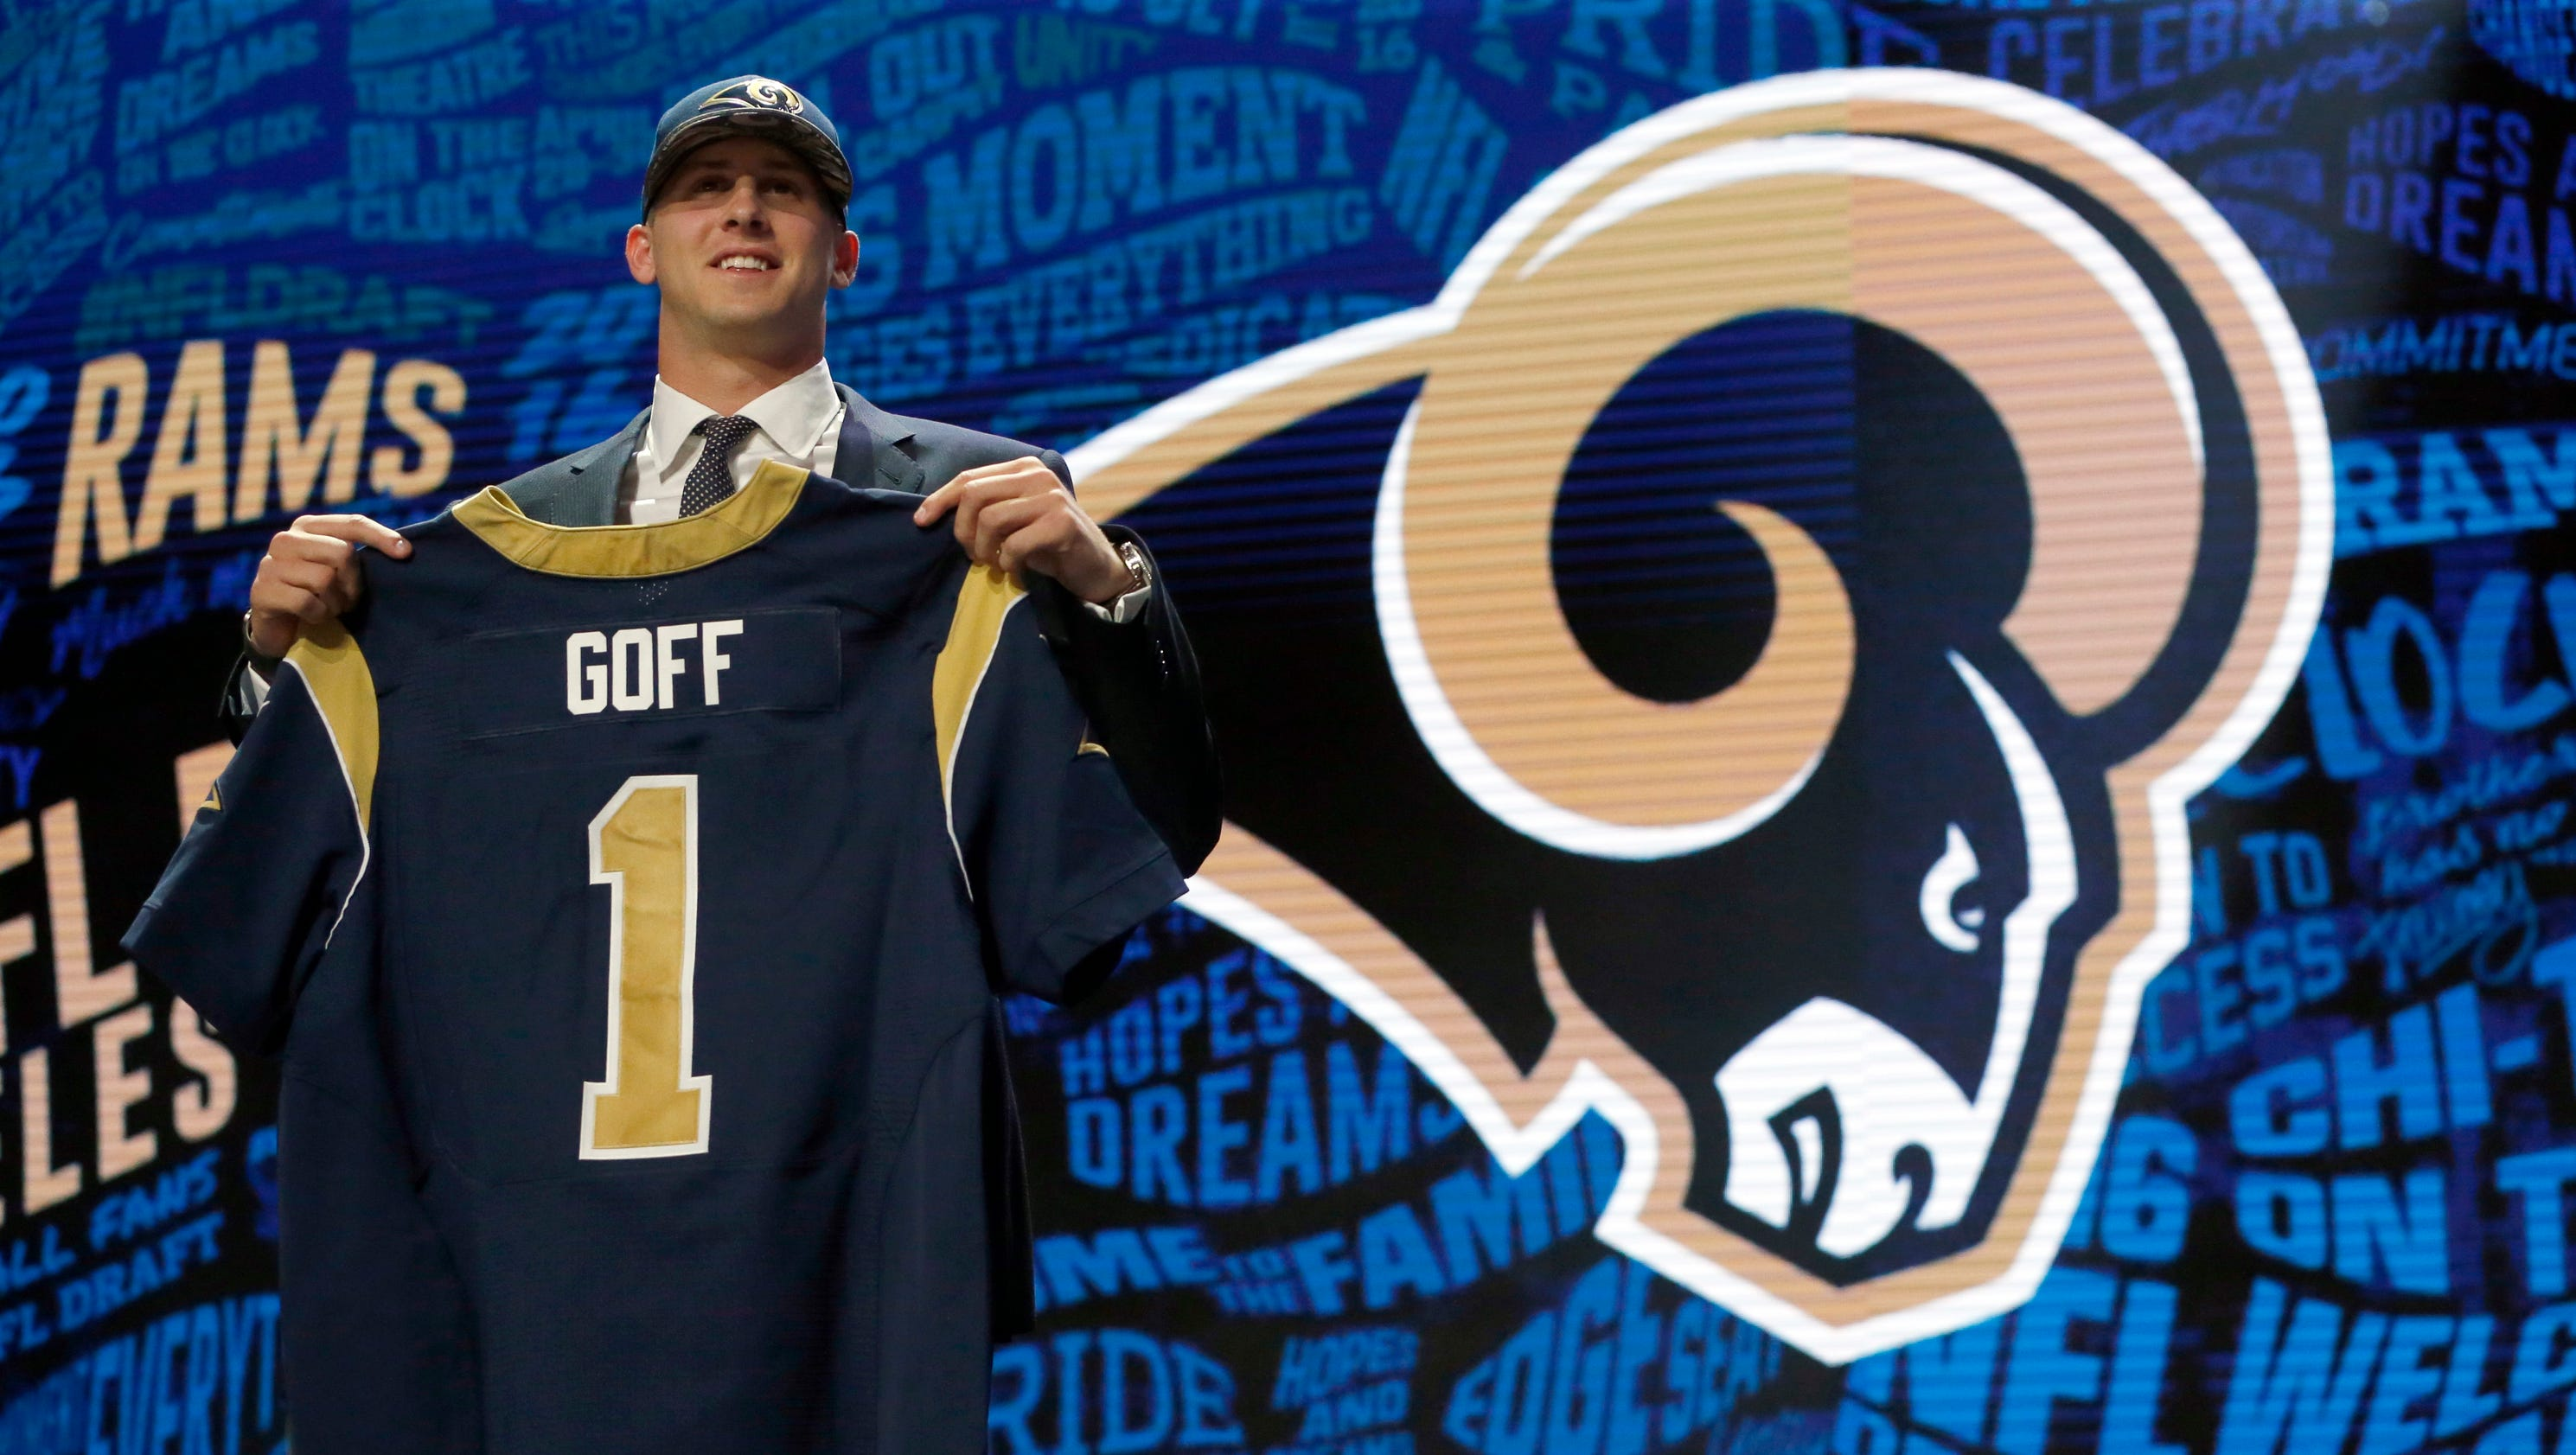 Armour Are Top Picks Jared Goff And Carson Wentz Ready